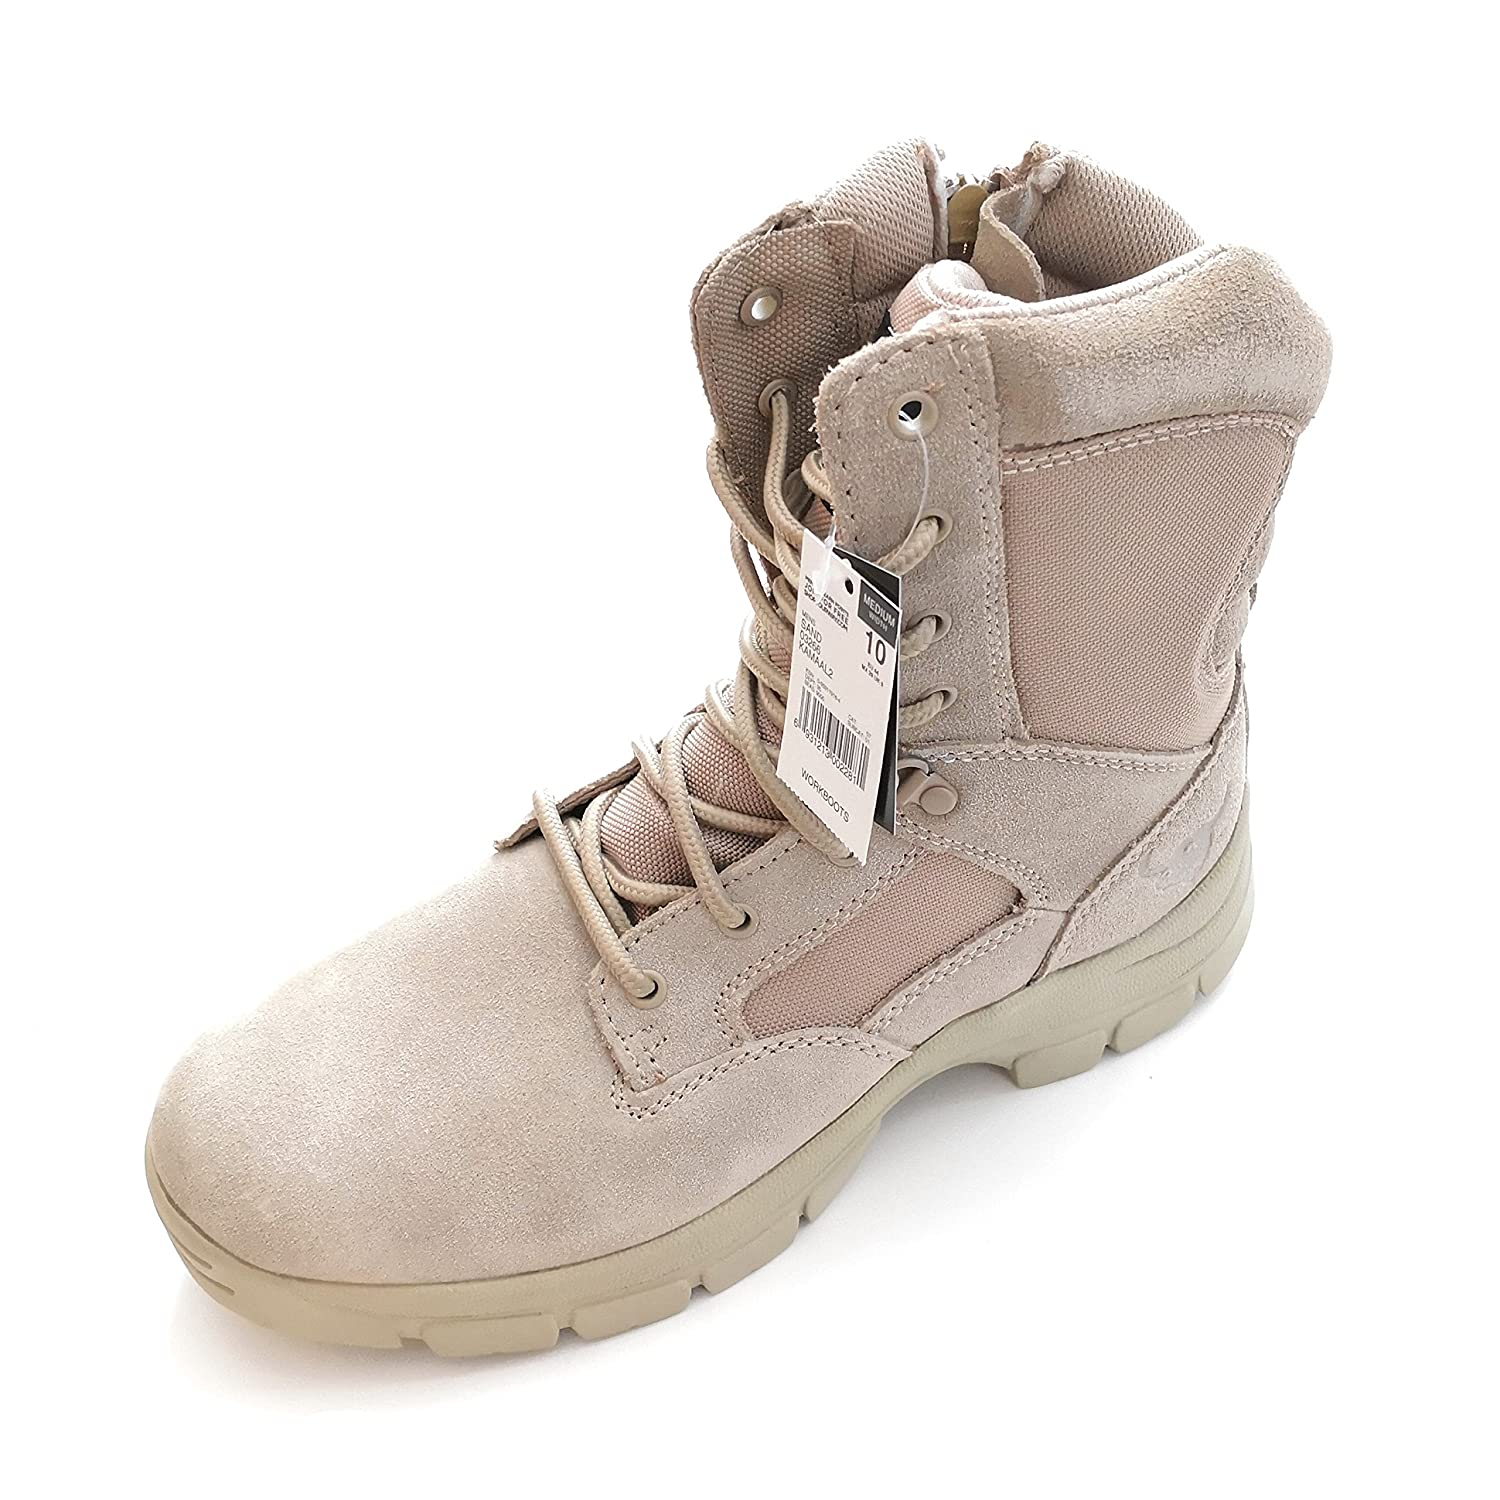 7e82867b4 Amazon.com | Texas Steer Mens Kamaal 2 Tan Work Boot Sand Combat Tactical  Military Army Shoes | Shoes